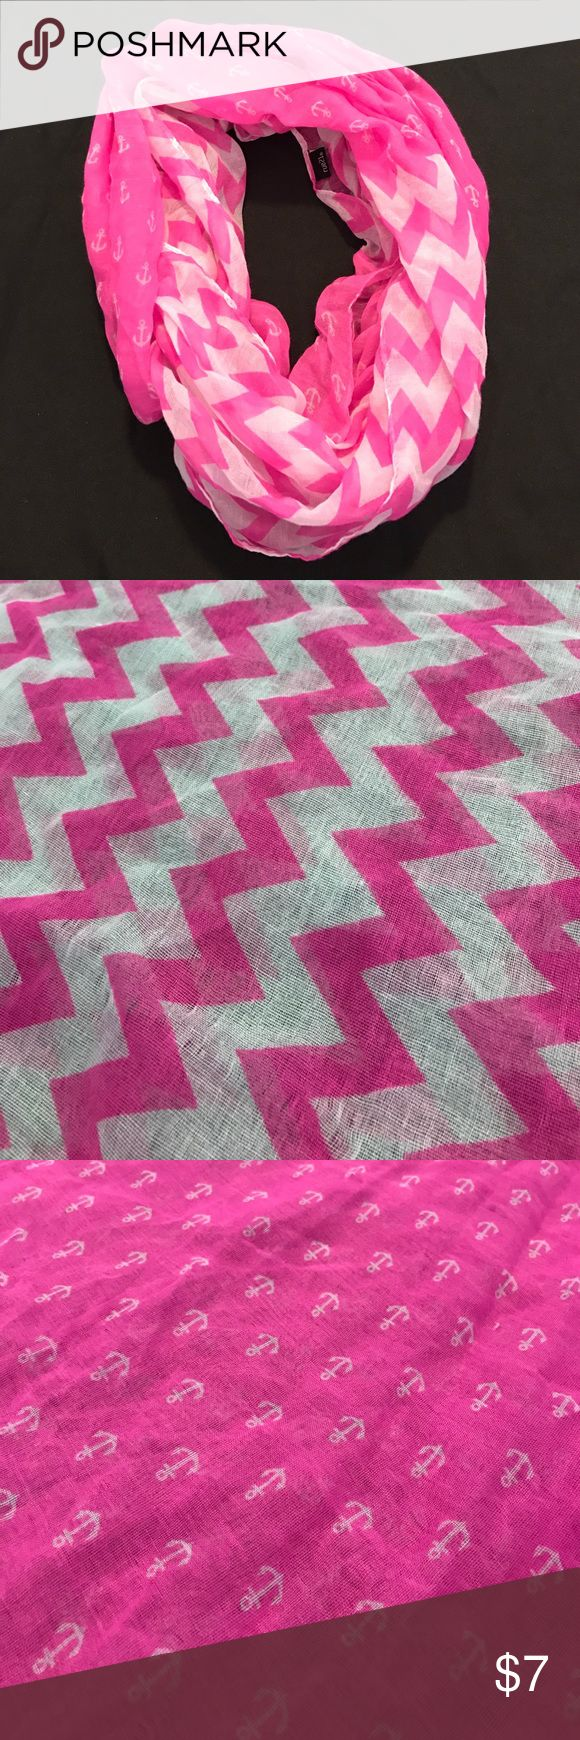 Rue 21 Pink Chevron and Anchors Scarf Two-toned pink and white scarf. Has chevron and anchor pattern. Rue21 Accessories Scarves & Wraps